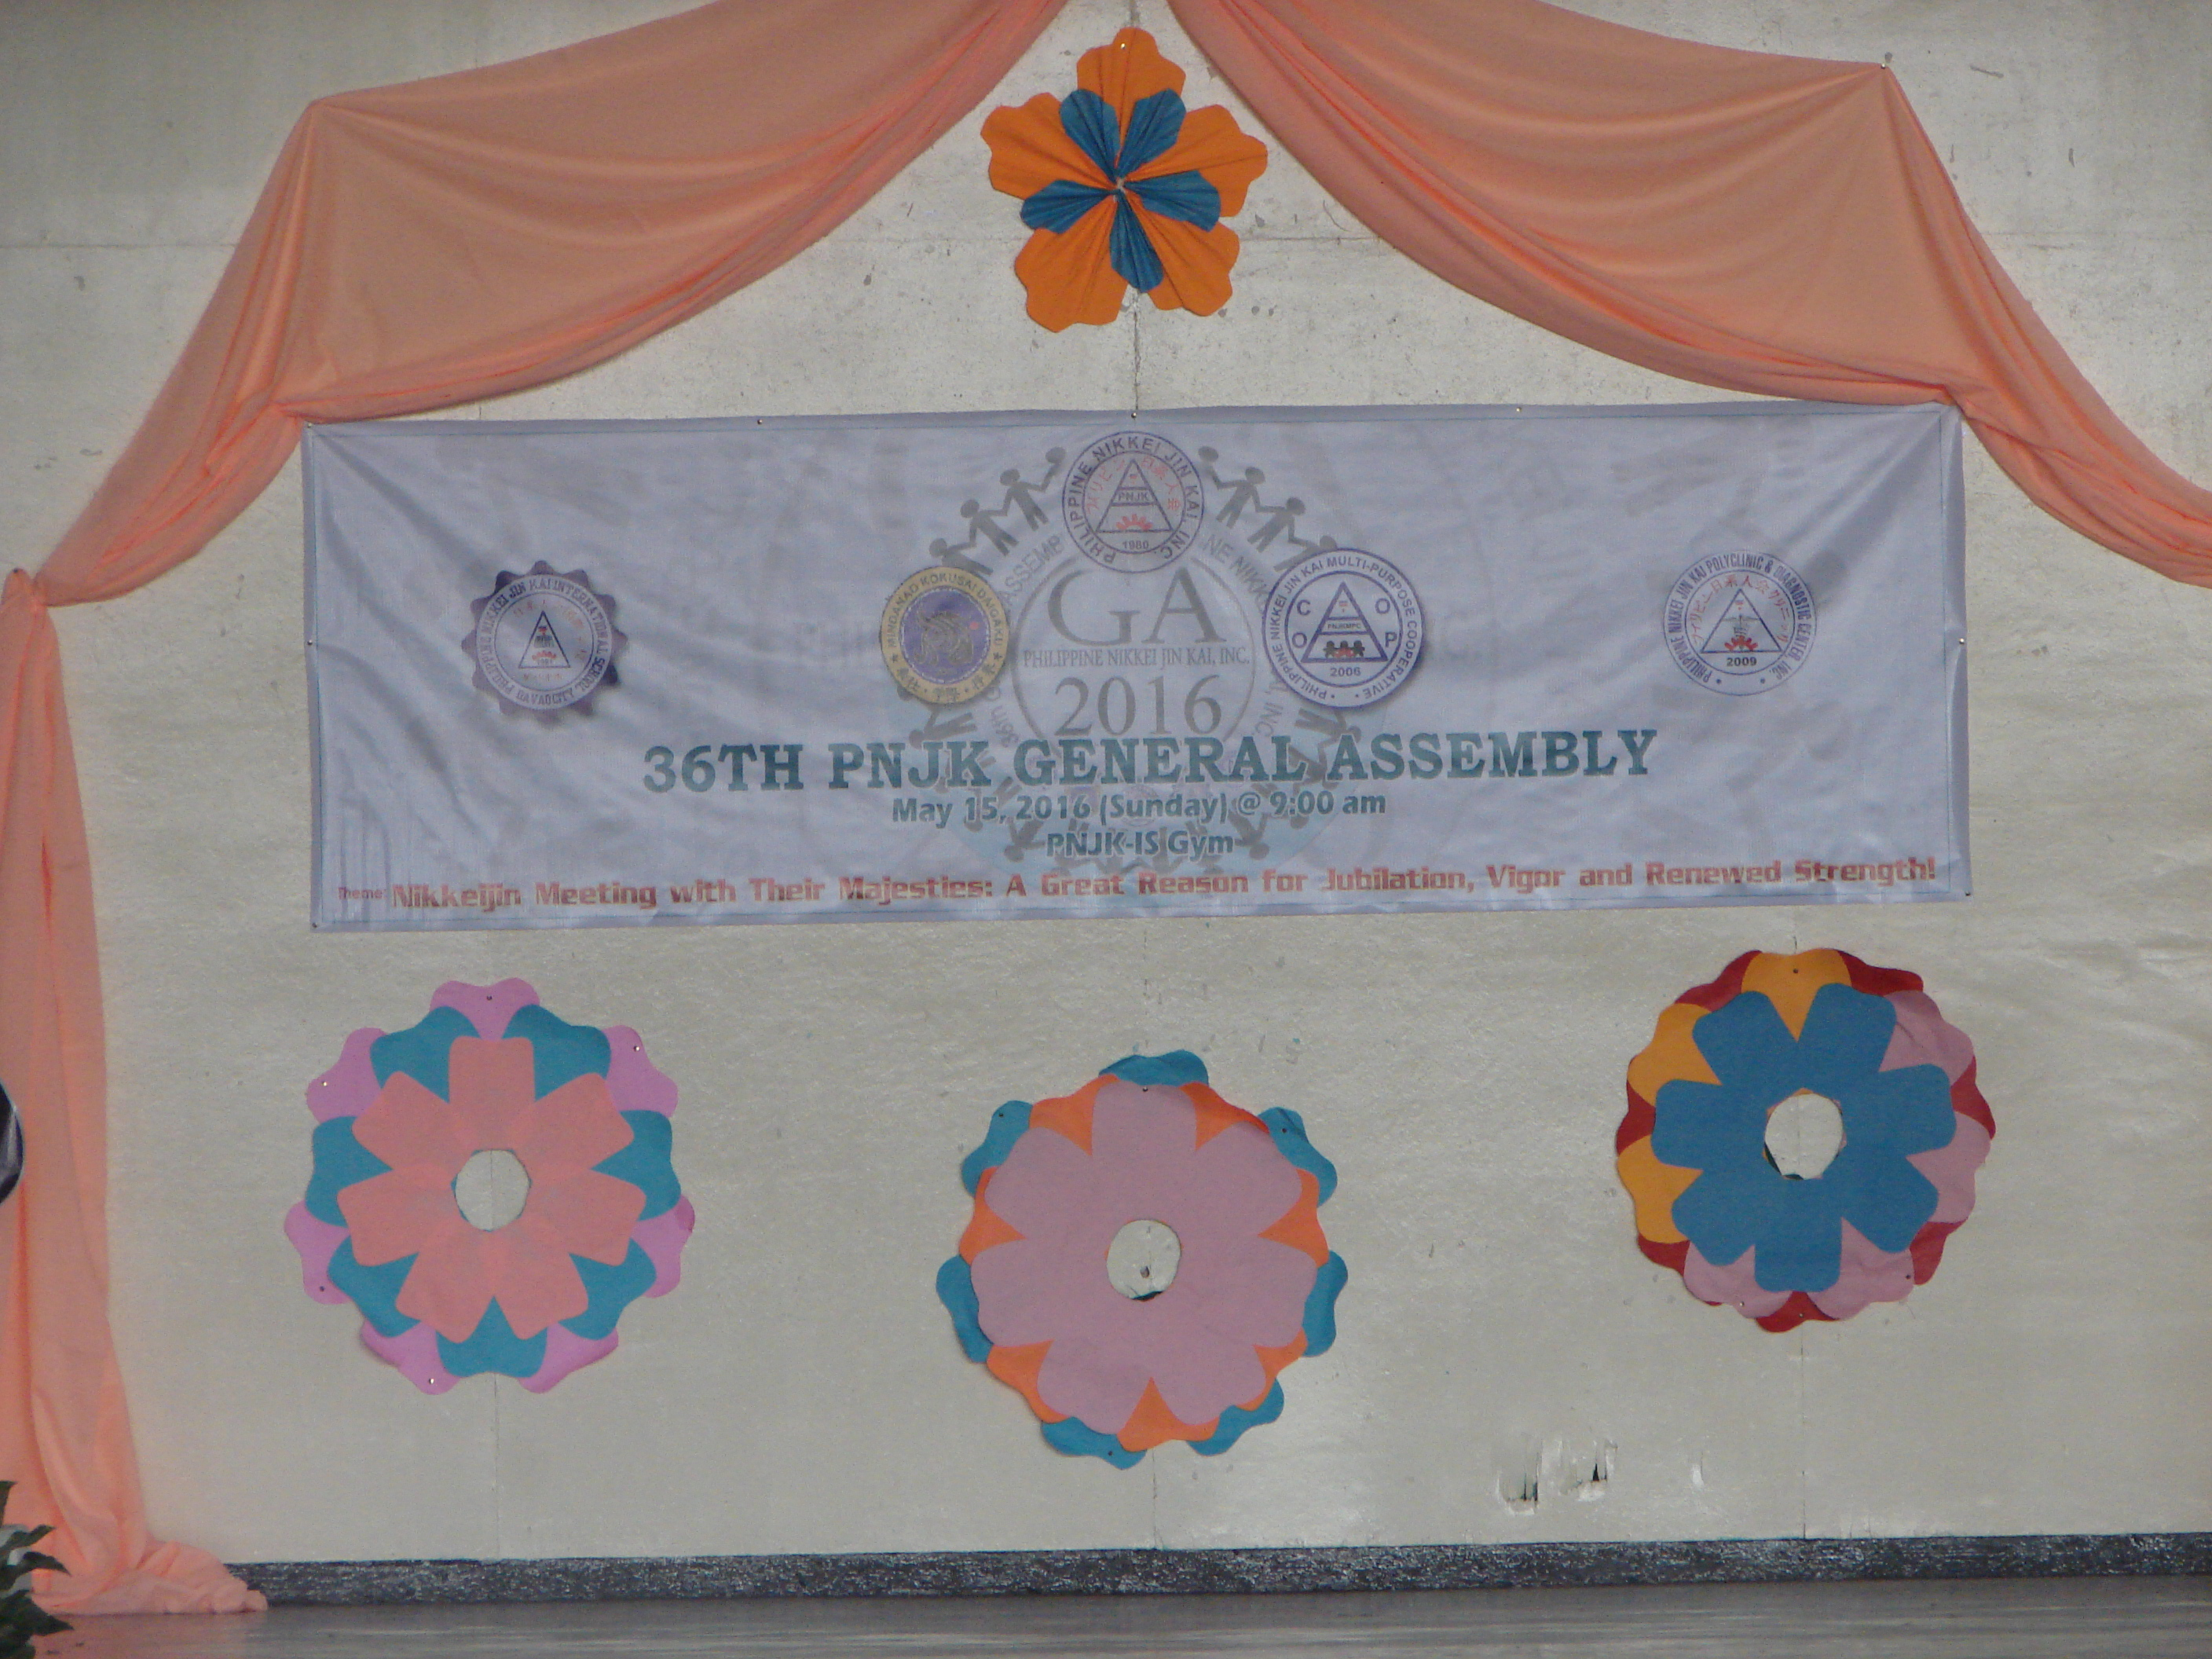 36th PNJK General Assembly